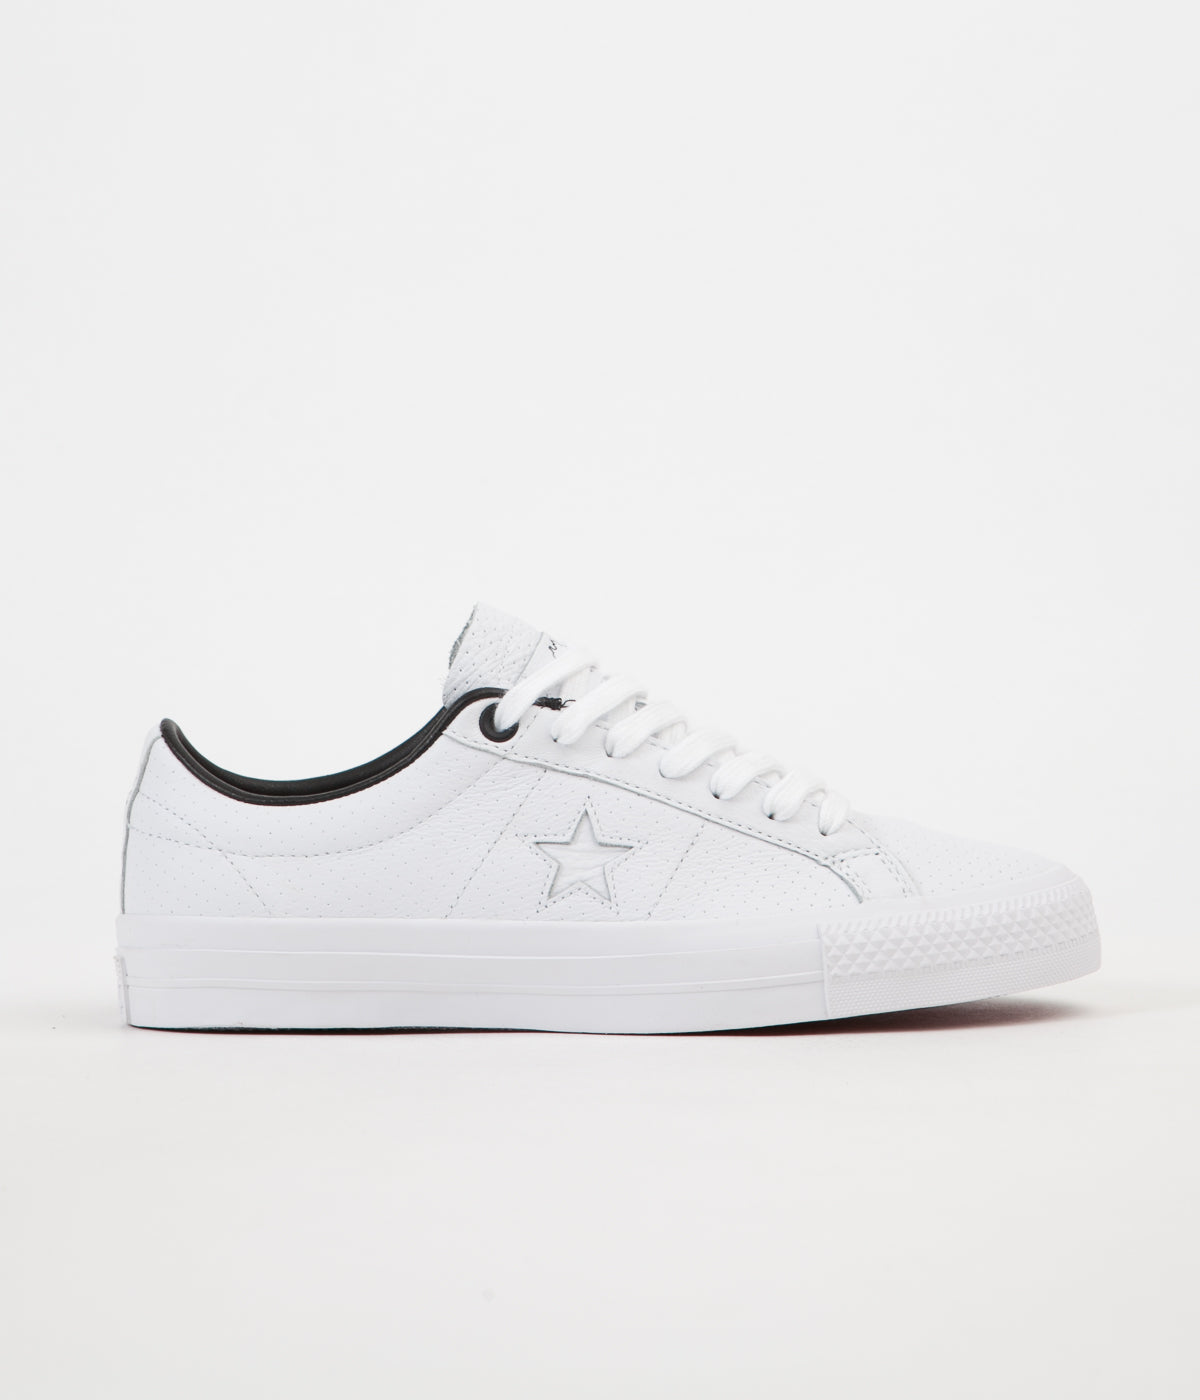 930d9ef219 converse -x-civilist-one-star-pro-shoes-white-black-1 af125339-3285-47ea-a0b6-e7f6aaf05f35.jpg v 1512053053